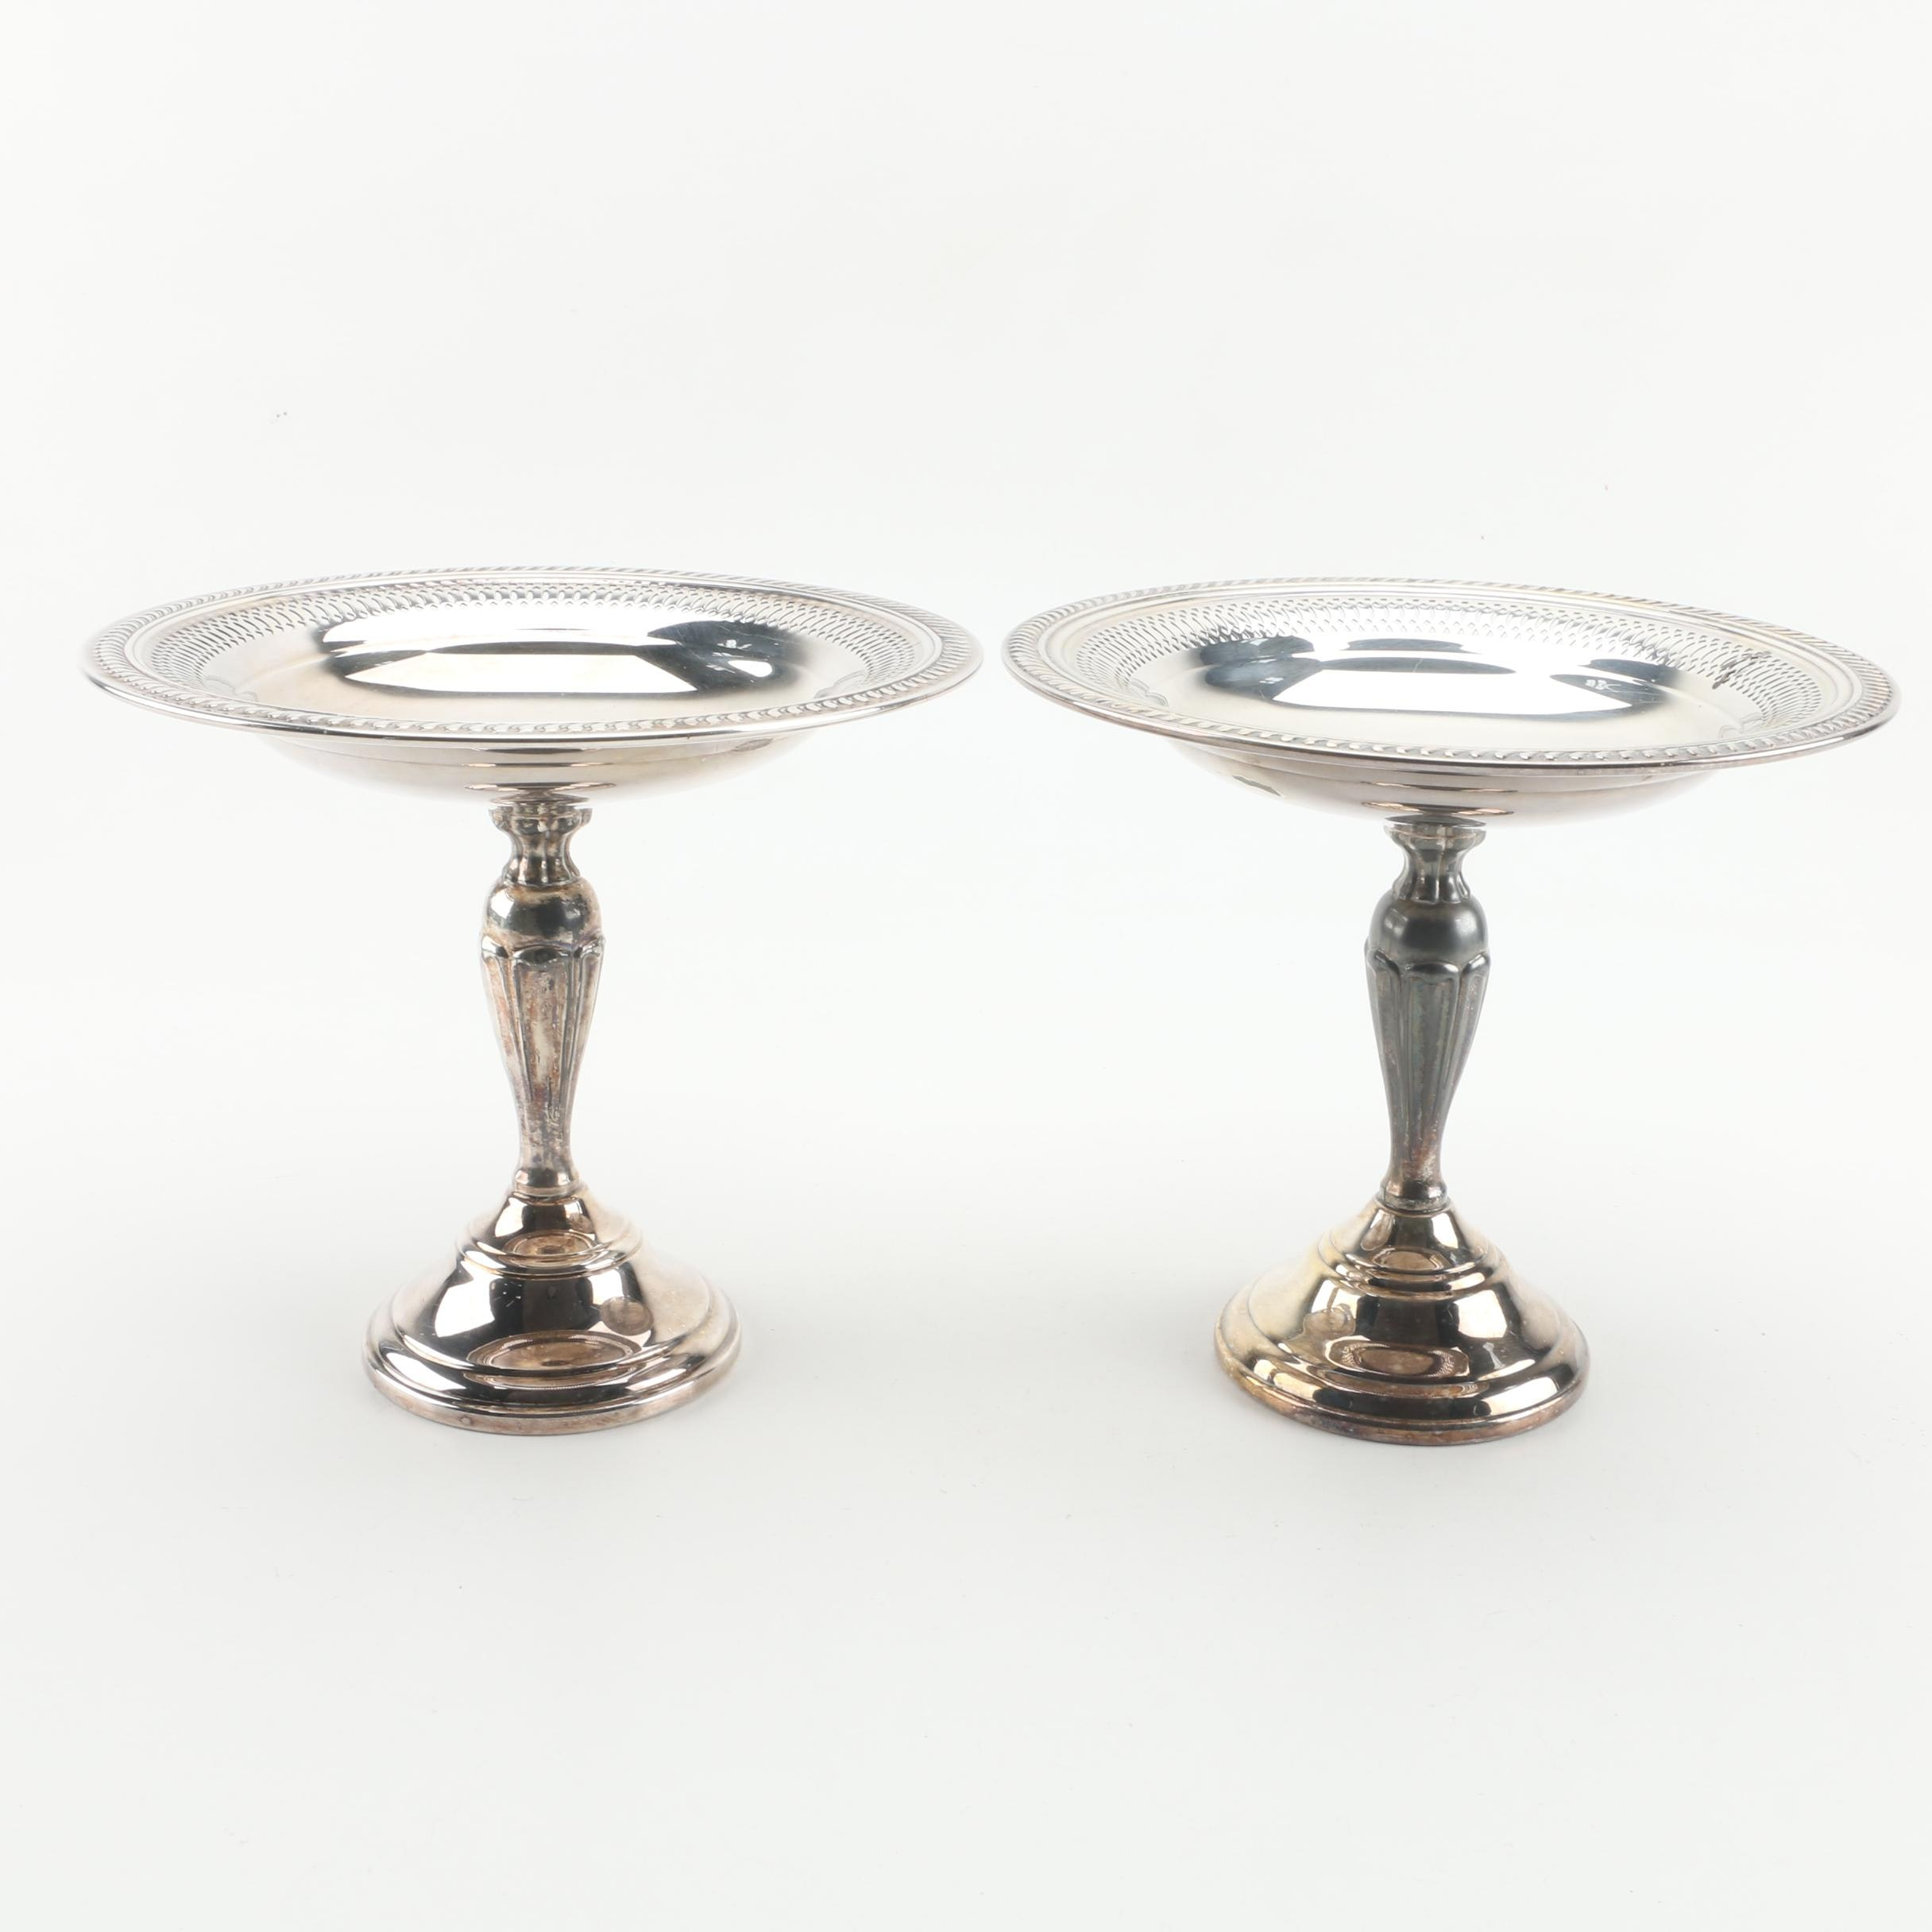 Silver Plate Compotes with Pierced Gadrooning Rims